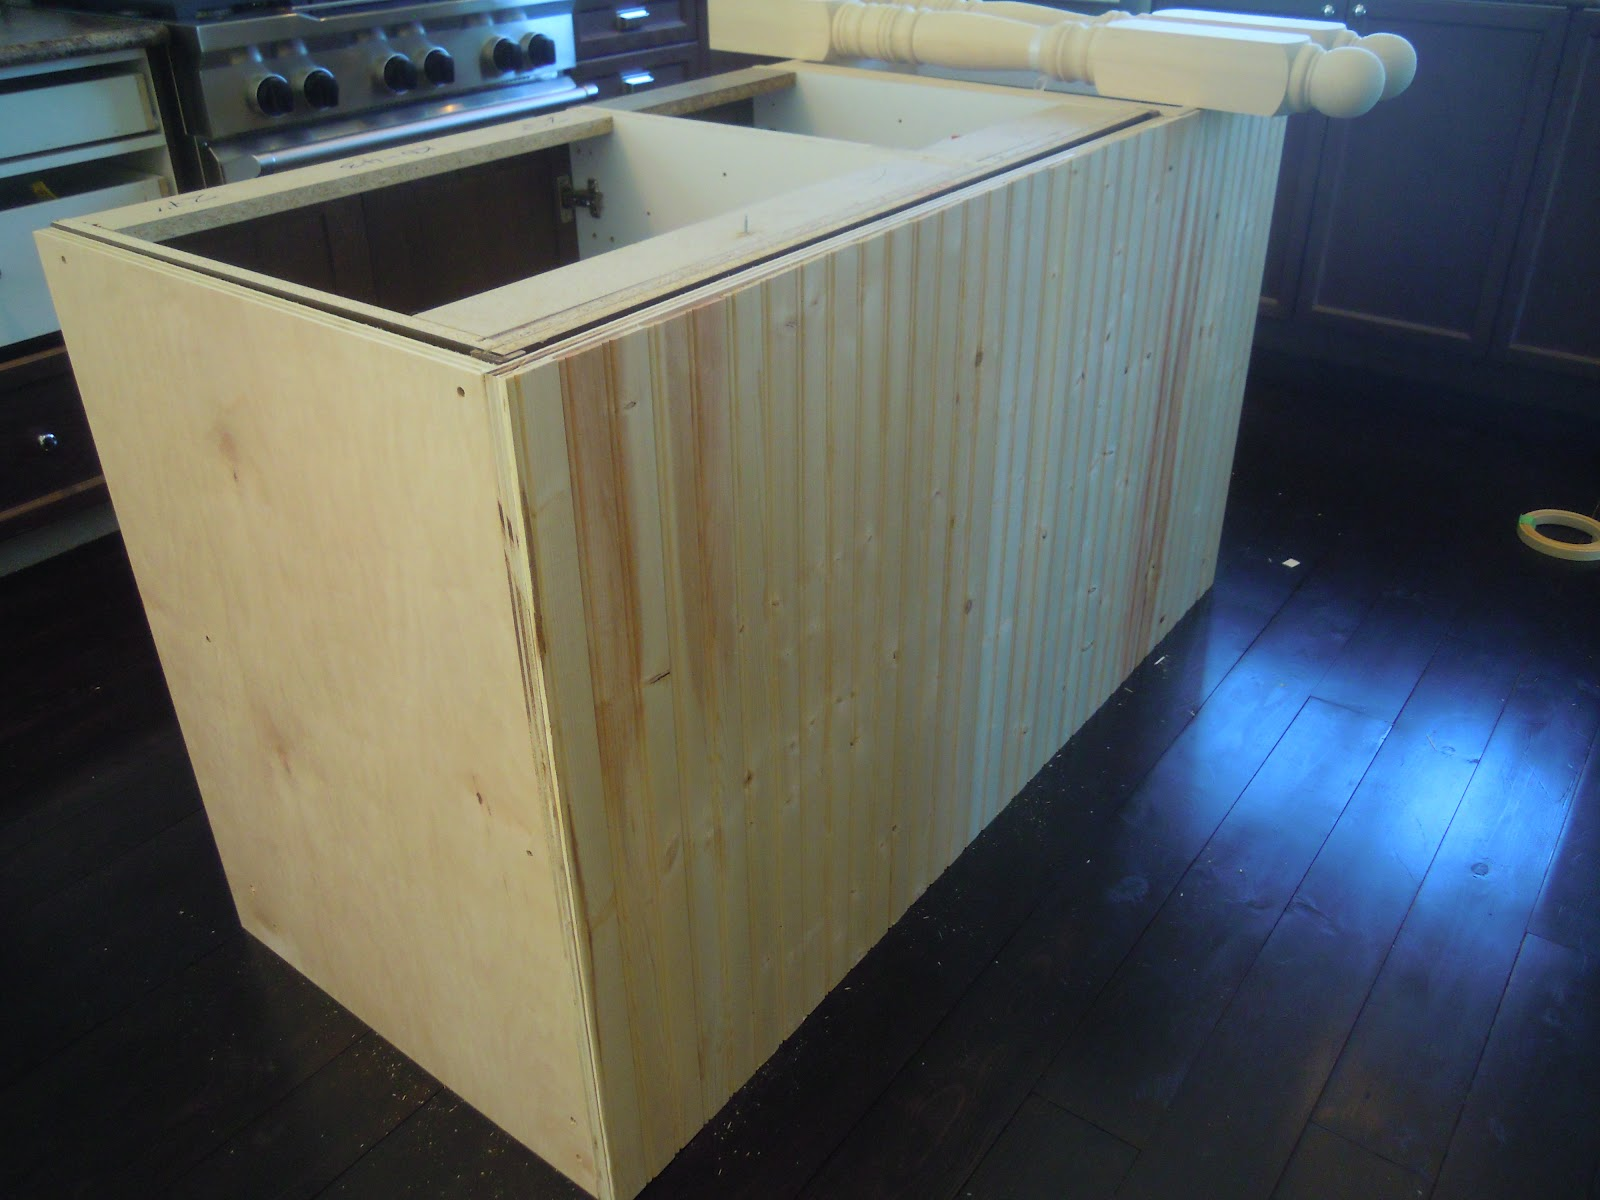 Making Base Cabinets Kitchen with Island